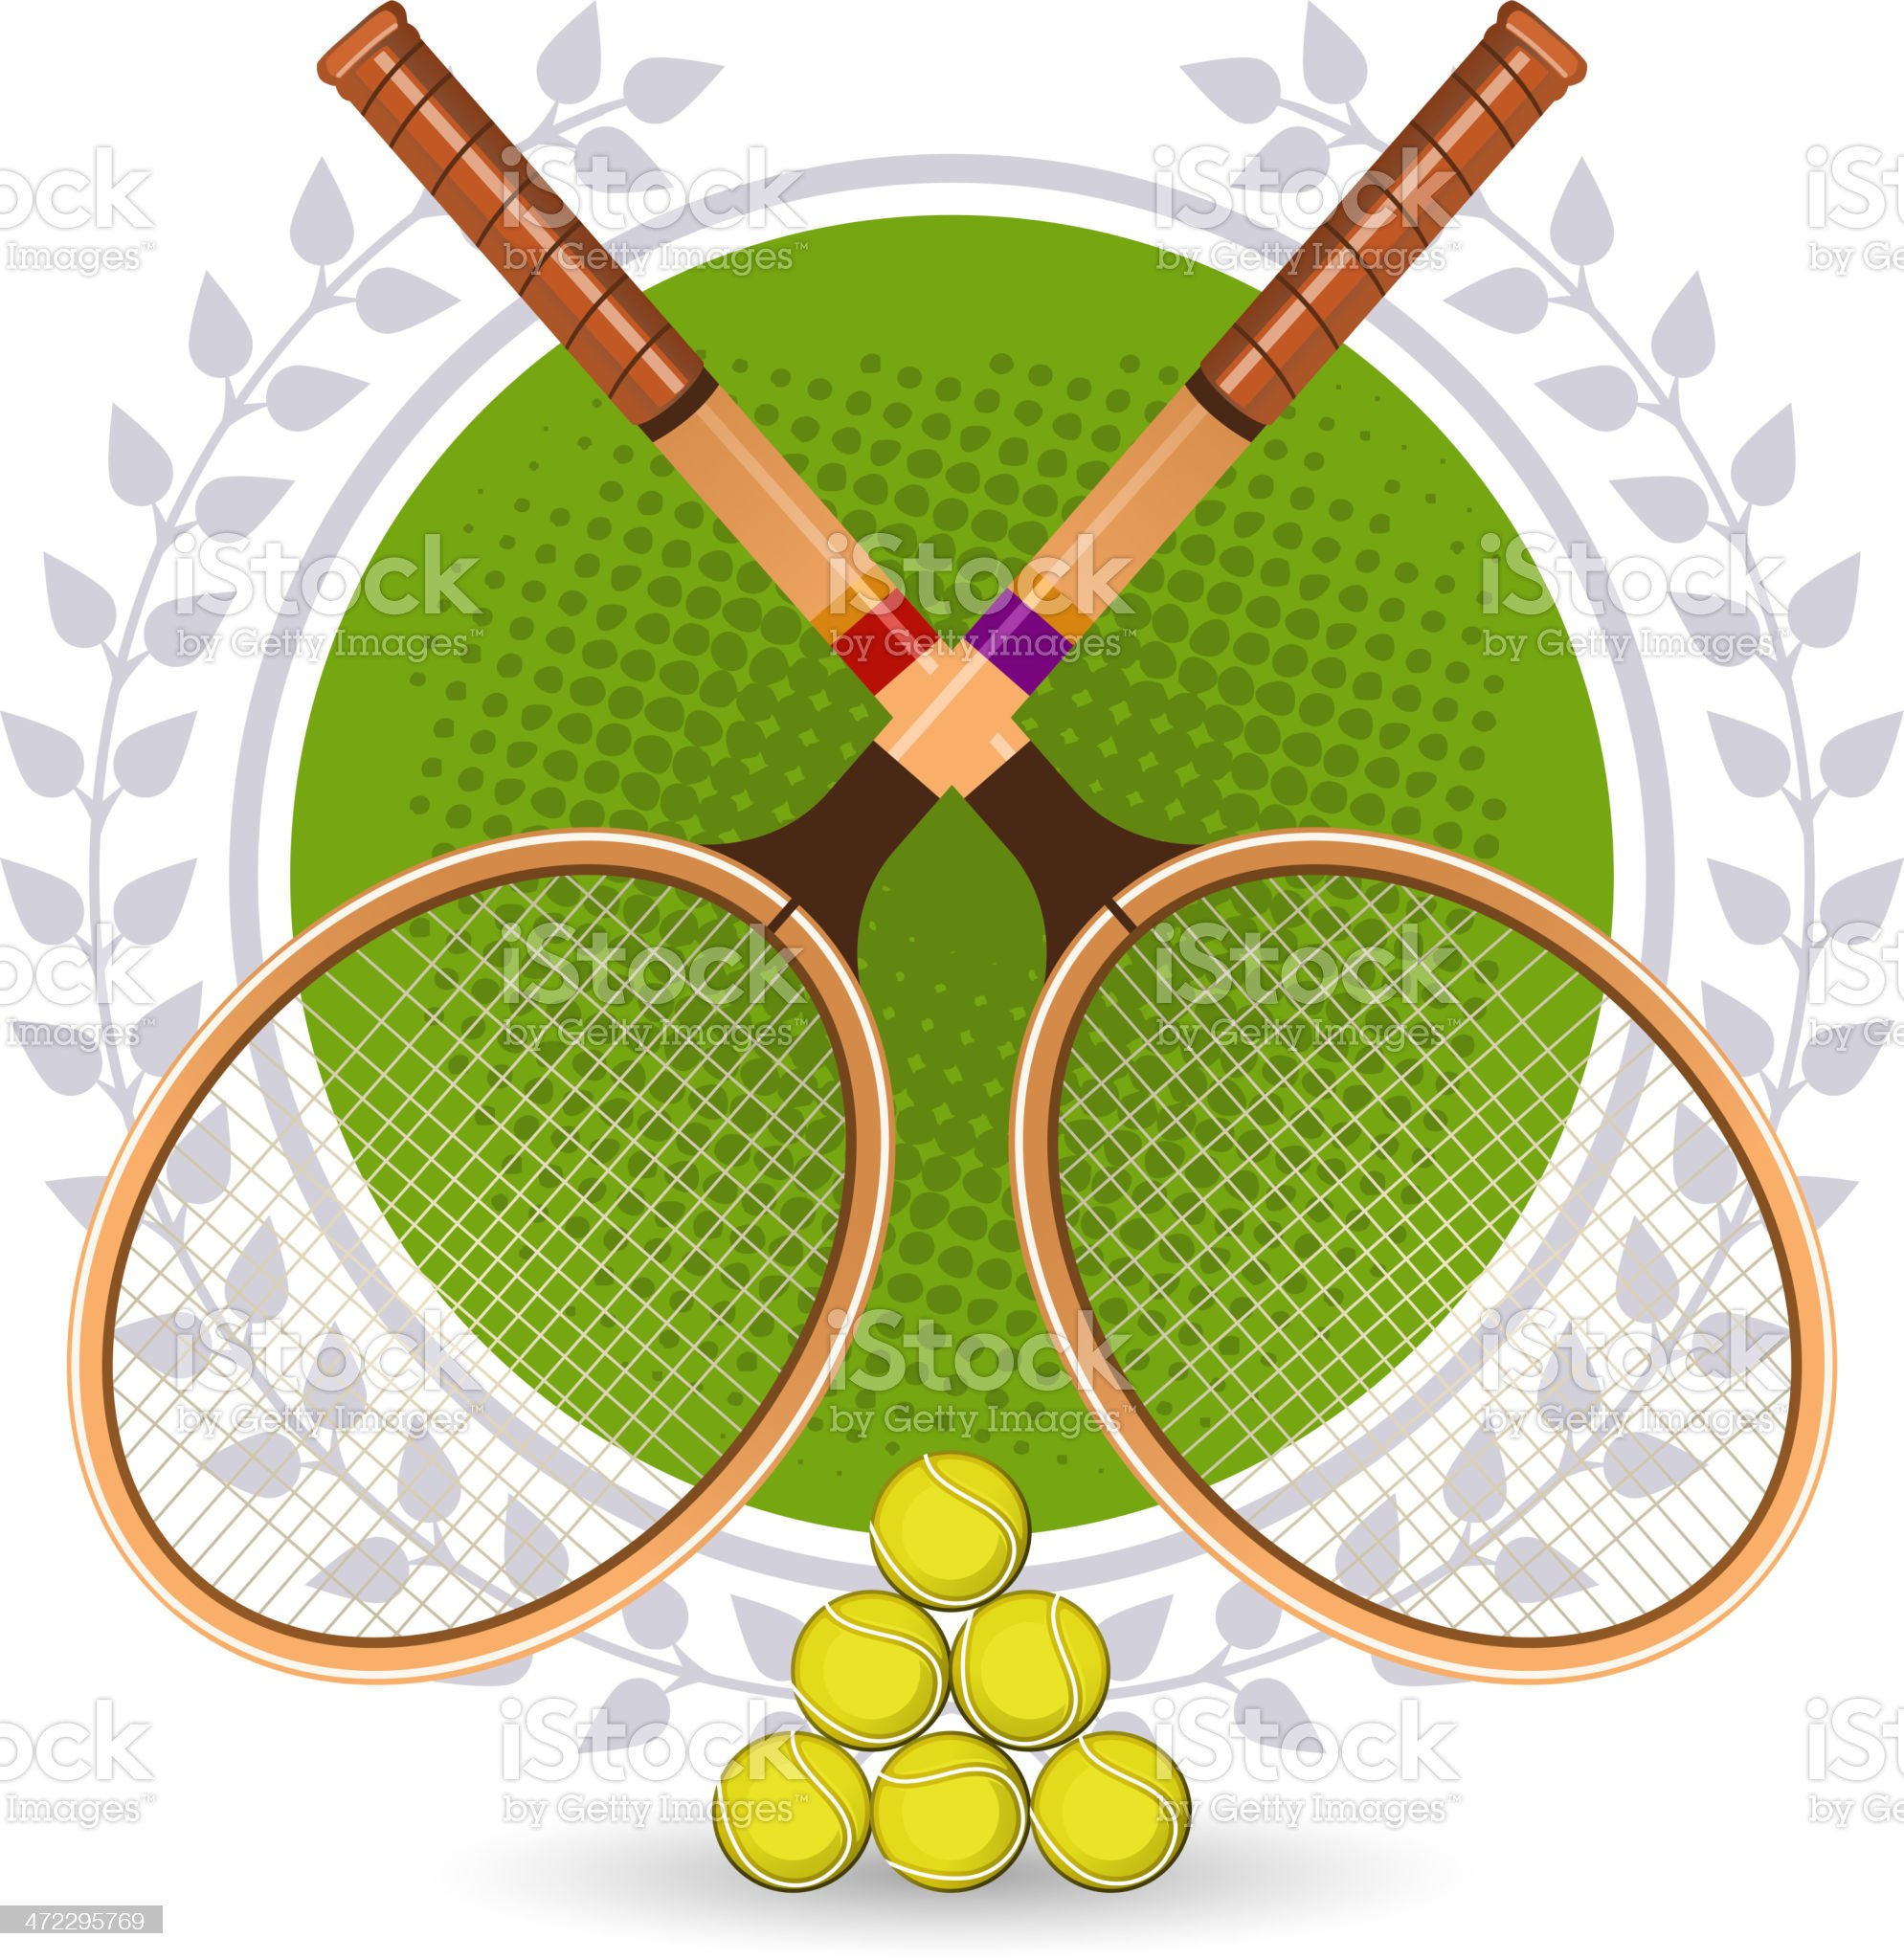 Retro Tennis Emblem Set with rackets and laurel wreath royalty-free stock vector art